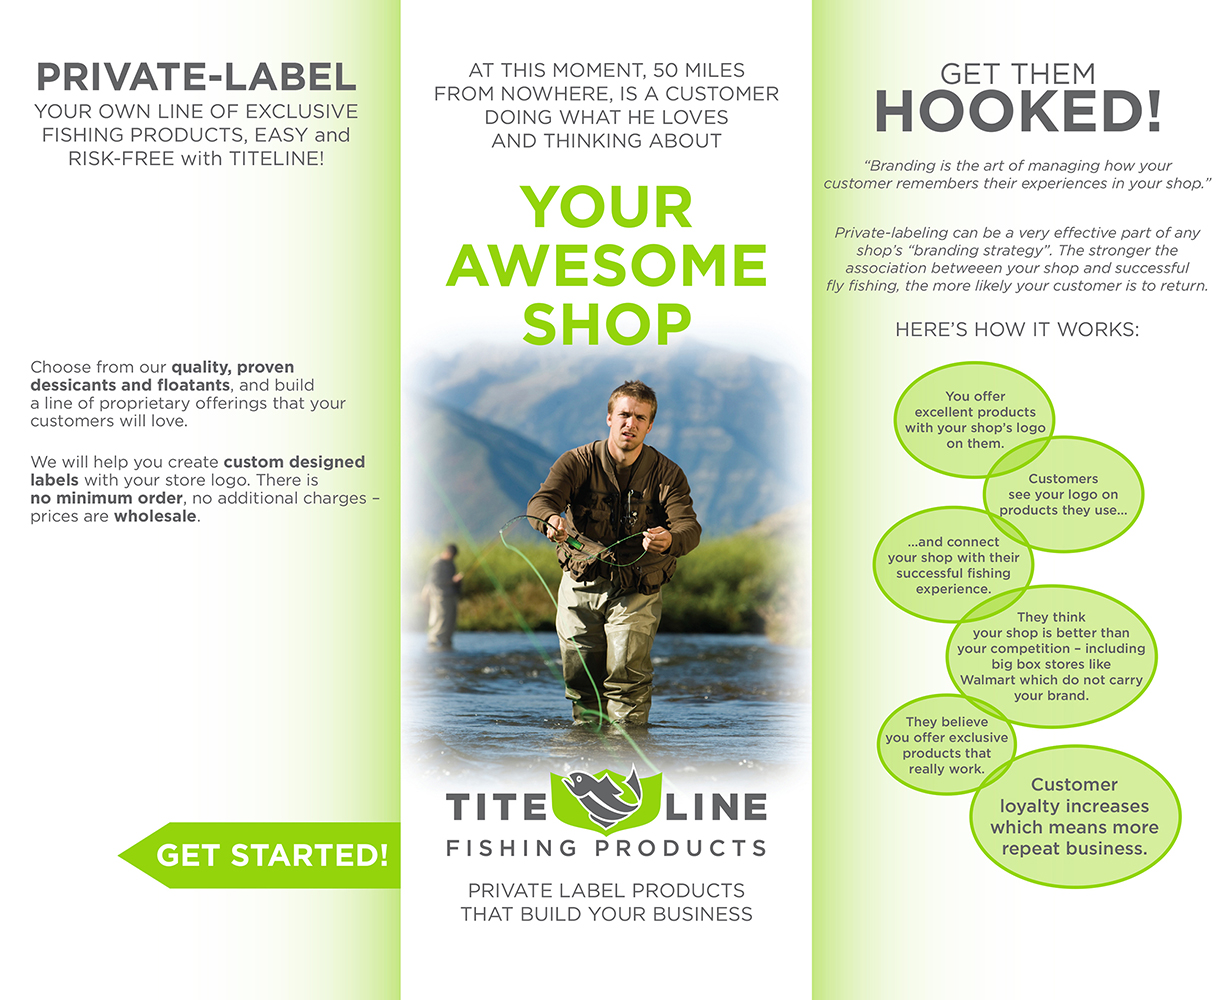 Private Label | titelineproducts.com